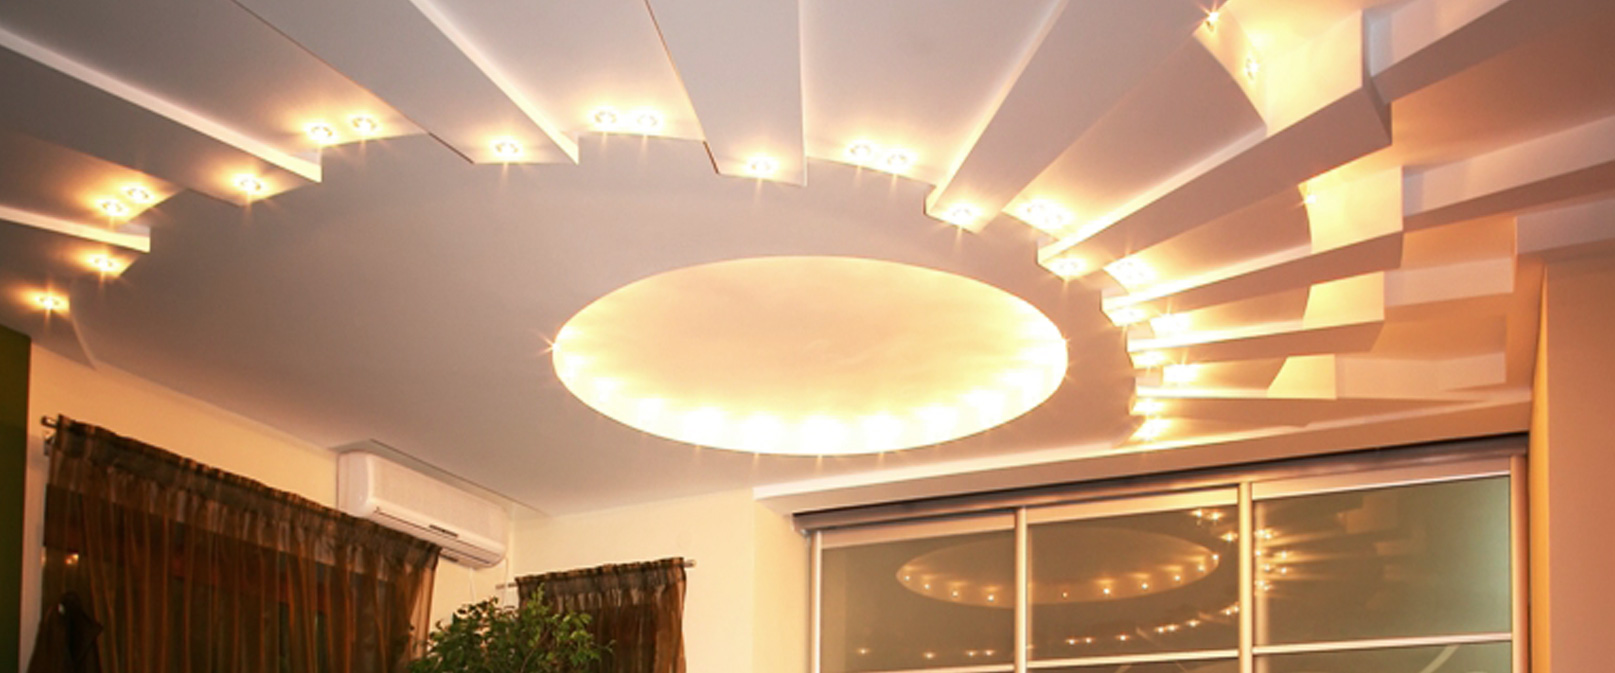 lighting up the ceiling saint gobain gyproc india rh gyproc in ceiling lighting design pictures wood ceiling design lighting